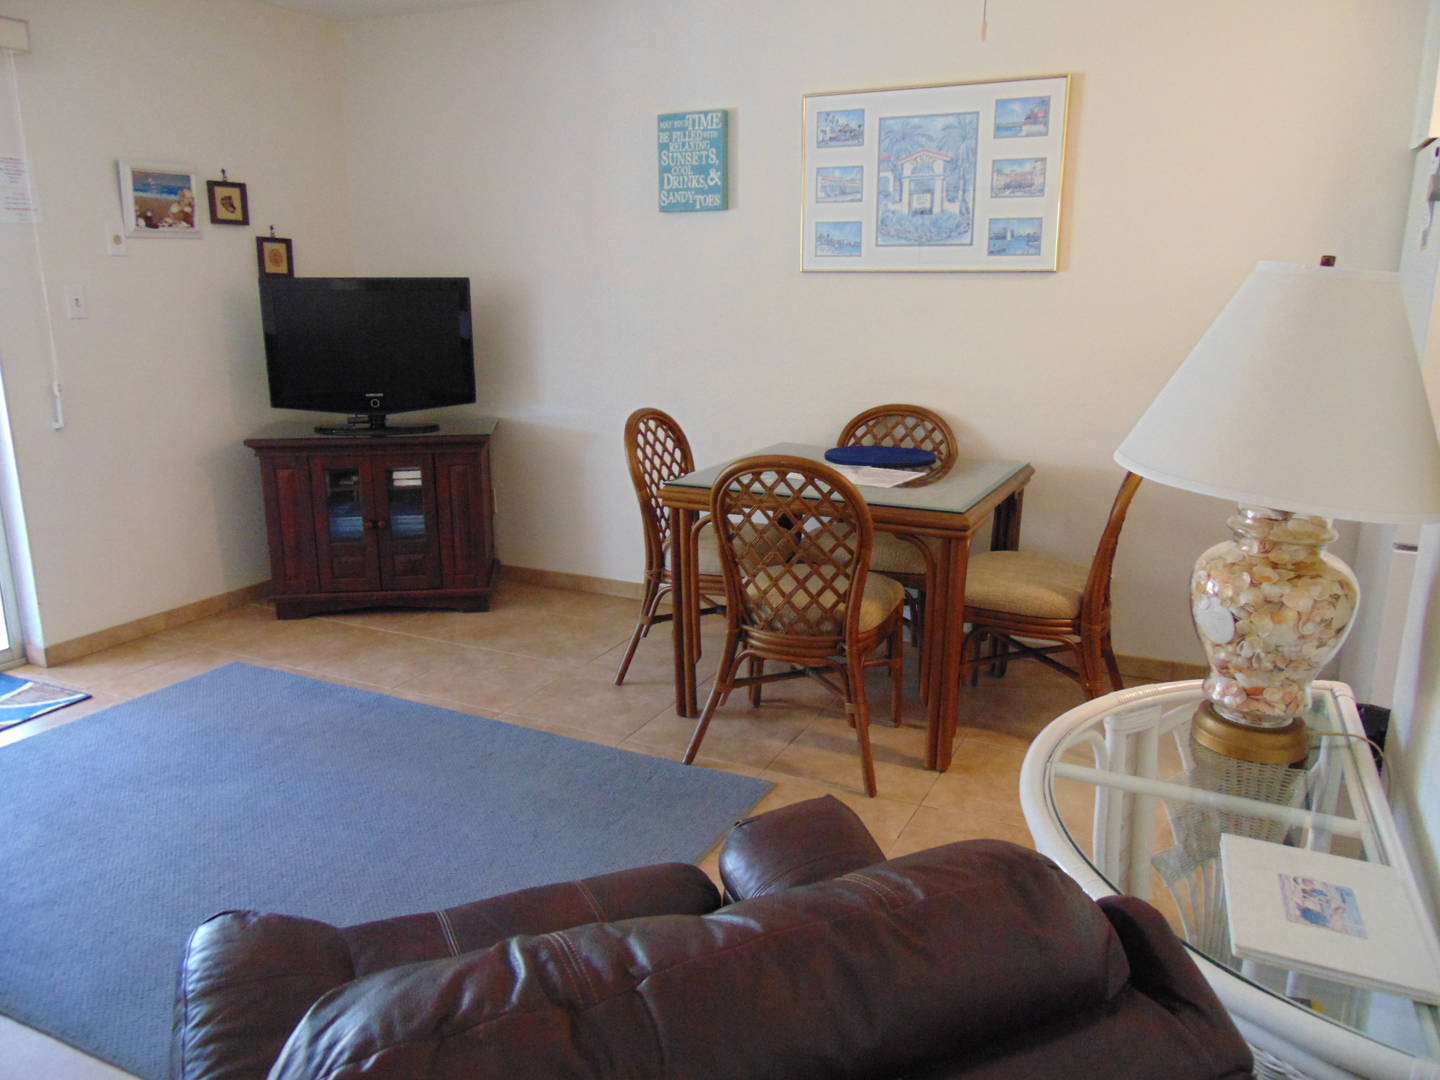 Unit 26 Dining Room and Entertainment